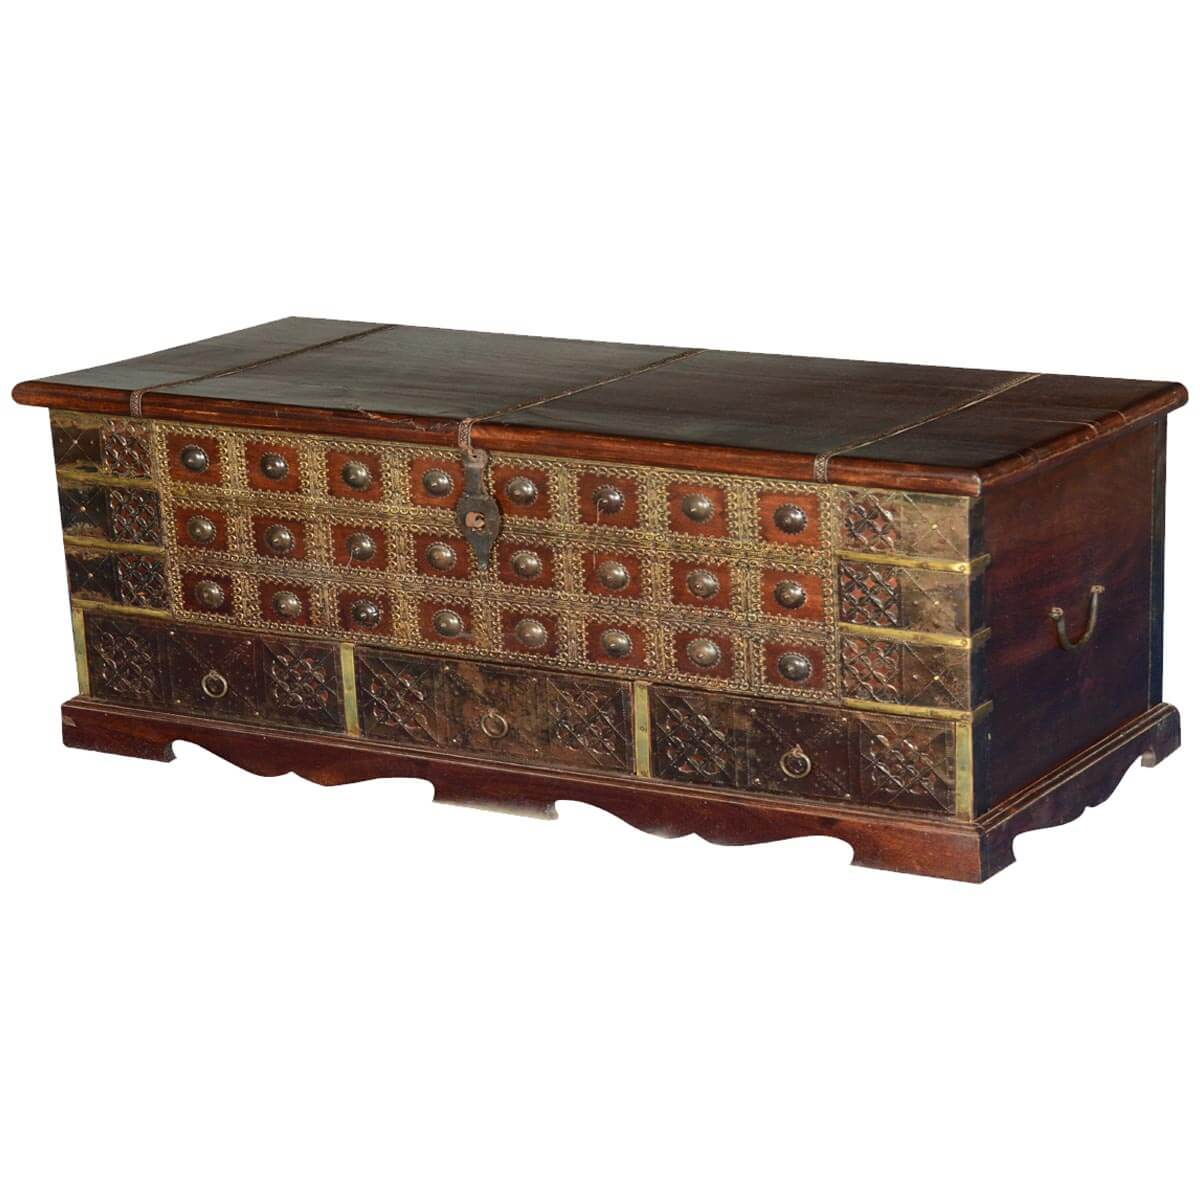 Superb img of  Chests Tudor Treasures Mango Wood & Brass Coffee Table Chest w Drawers with #B28C19 color and 1200x1200 pixels